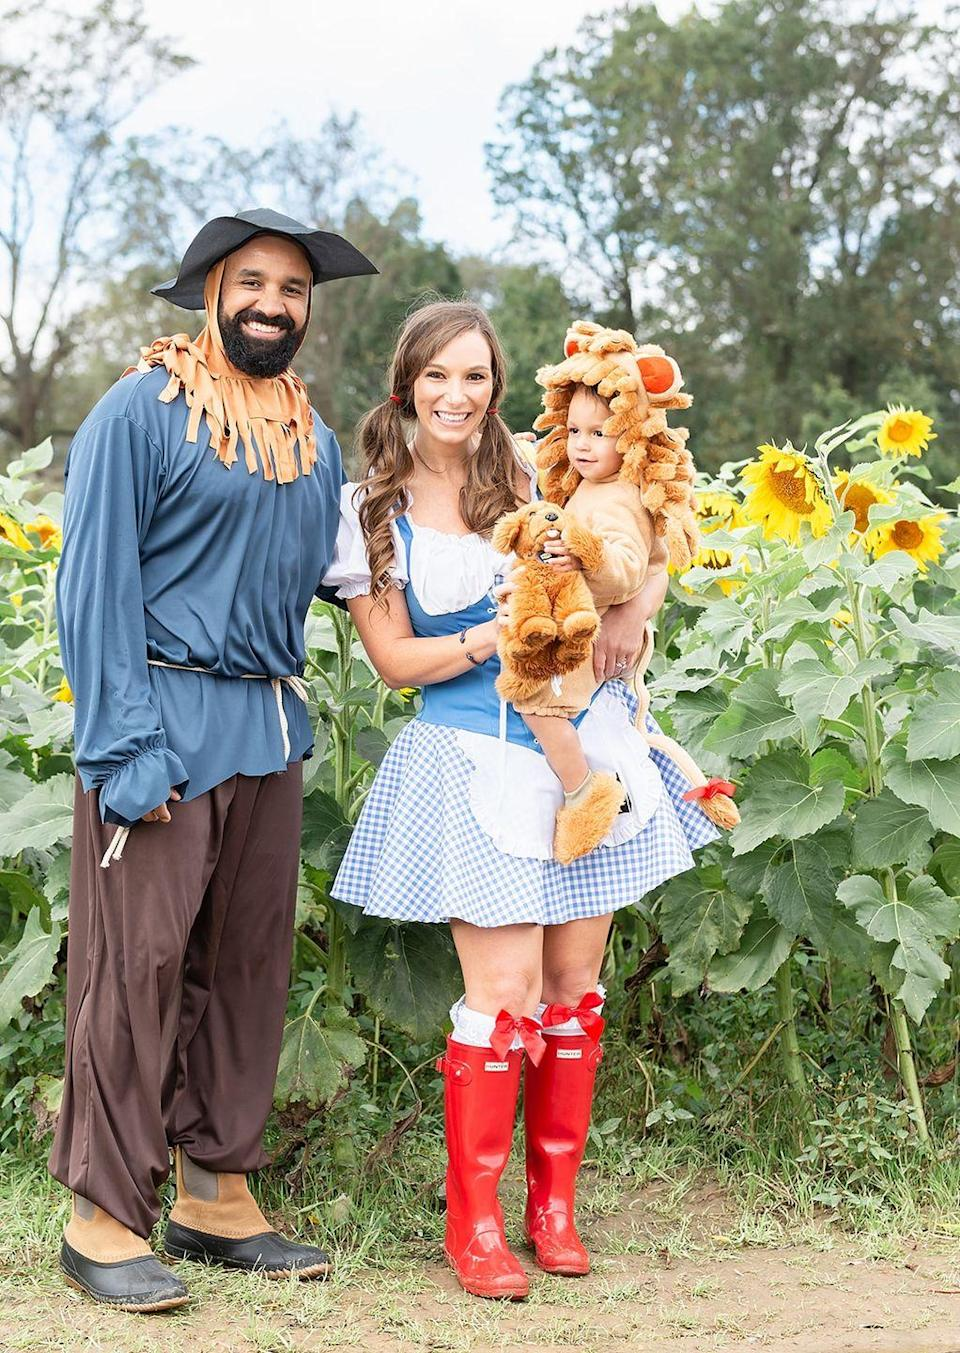 """<p>There may be no place like home, but you can still follow the yellow brick road to this sweet costume grouping, which brings together Dorothy, the Scarecrow, and the Cowardly Lion together. </p><p><strong>Get the tutorial at <a href=""""http://shoptini.com/fashion/top-ten-last-minute-halloween-costume-ideas/"""" rel=""""nofollow noopener"""" target=""""_blank"""" data-ylk=""""slk:Shoptini"""" class=""""link rapid-noclick-resp"""">Shoptini</a>. </strong></p><p><a class=""""link rapid-noclick-resp"""" href=""""https://www.amazon.com/Hunter-Womens-Original-Gloss-Military/dp/B00K1XCRG6/ref=sr_1_2?dchild=1&tag=syn-yahoo-20&ascsubtag=%5Bartid%7C10050.g.29074815%5Bsrc%7Cyahoo-us"""" rel=""""nofollow noopener"""" target=""""_blank"""" data-ylk=""""slk:SHOP RED BOOTS"""">SHOP RED BOOTS</a><br></p>"""